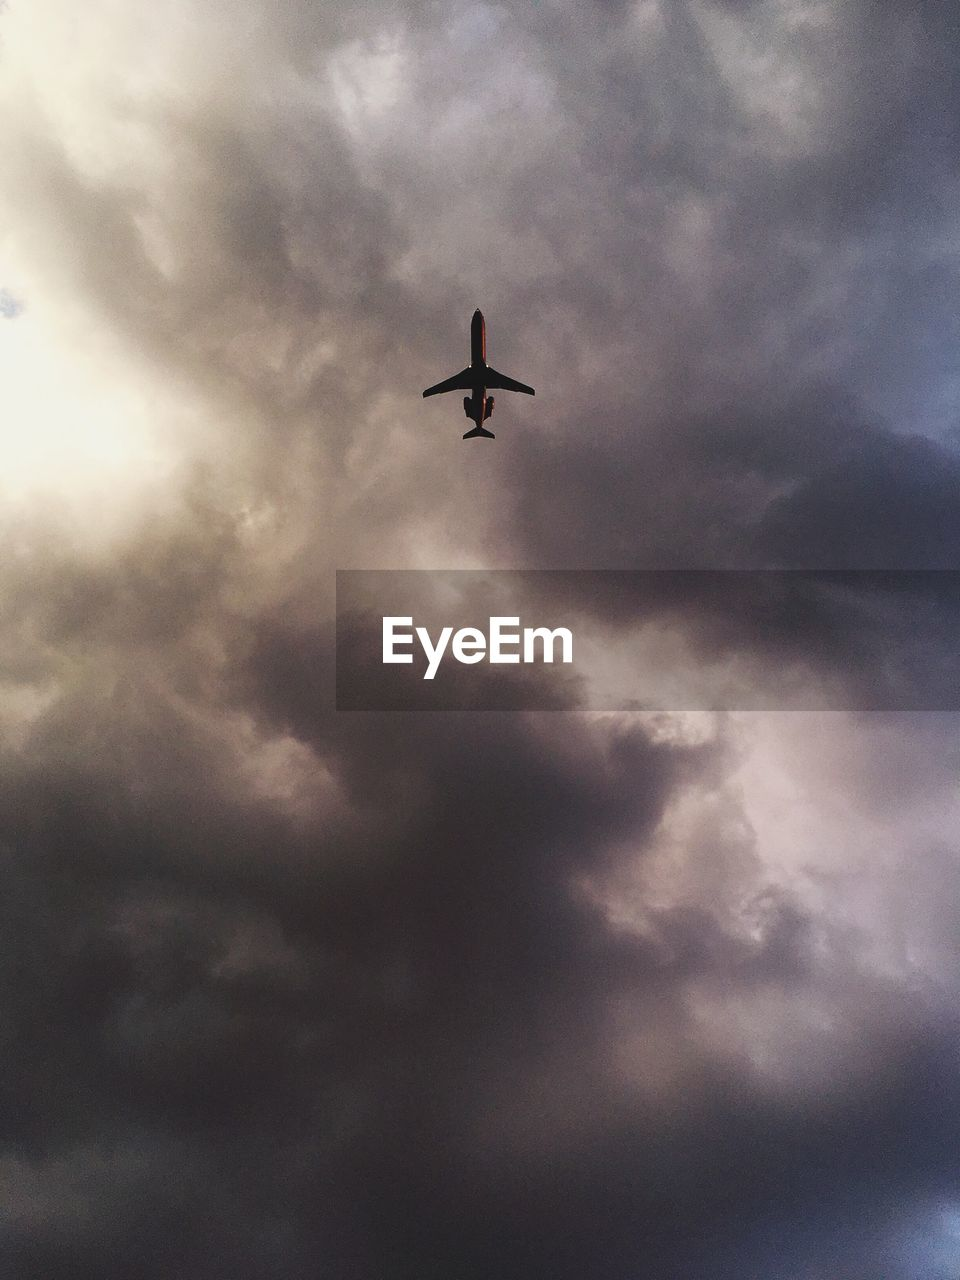 flying, sky, low angle view, cloud - sky, airplane, journey, mid-air, silhouette, outdoors, no people, transportation, air vehicle, spread wings, day, nature, bird, animal themes